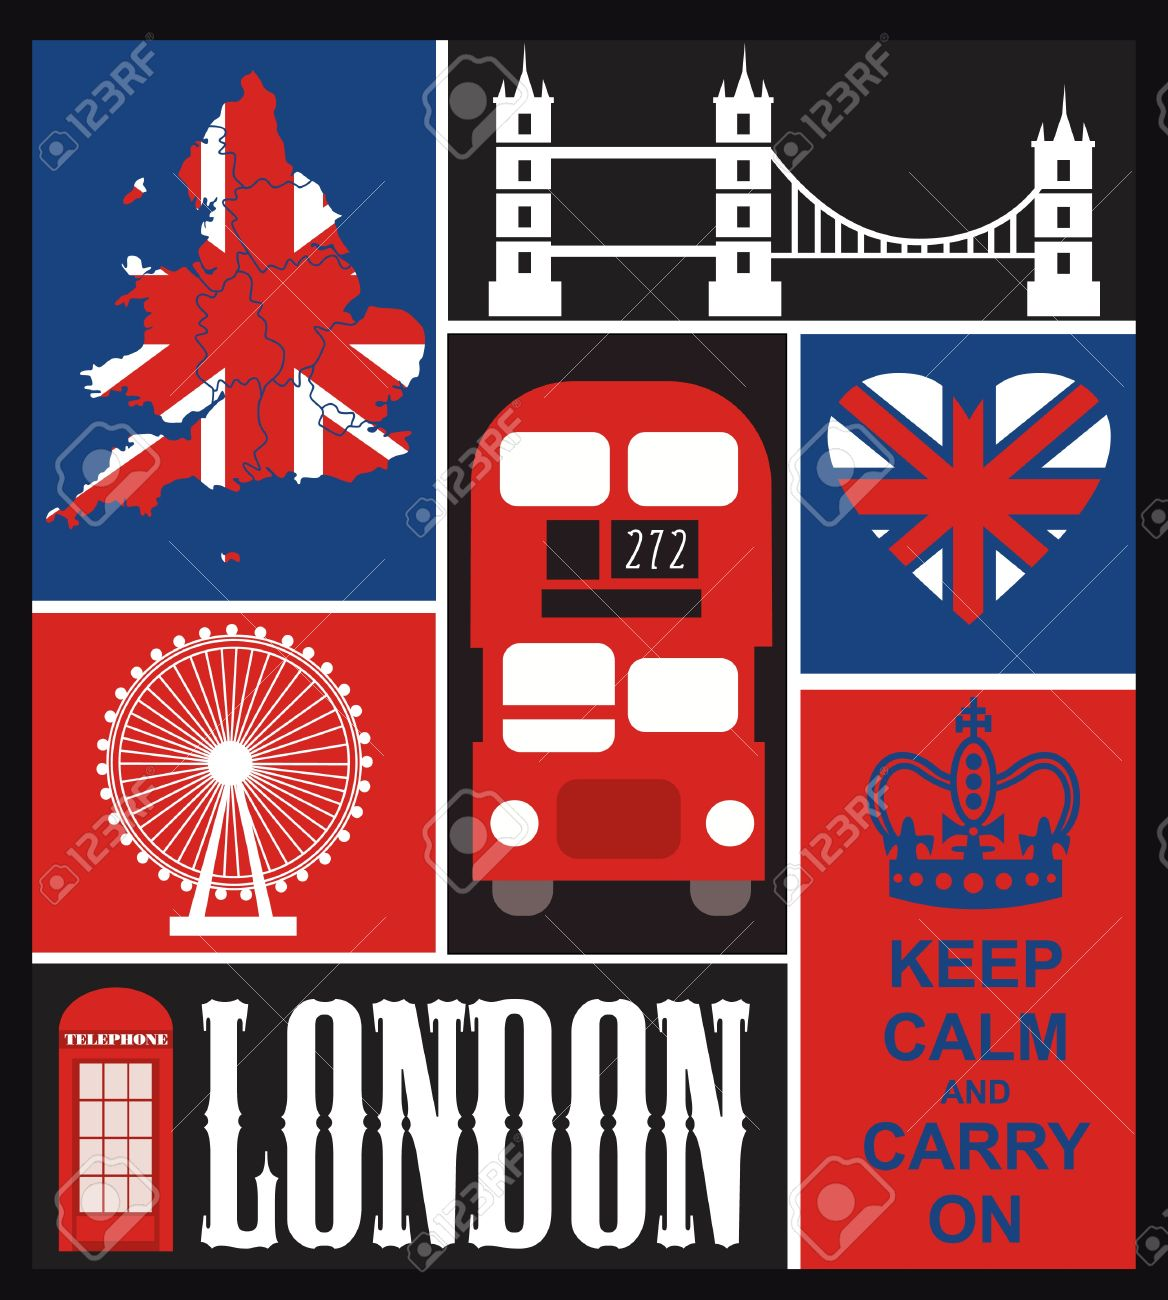 London card design. vector illustration Stock Vector - 19252212